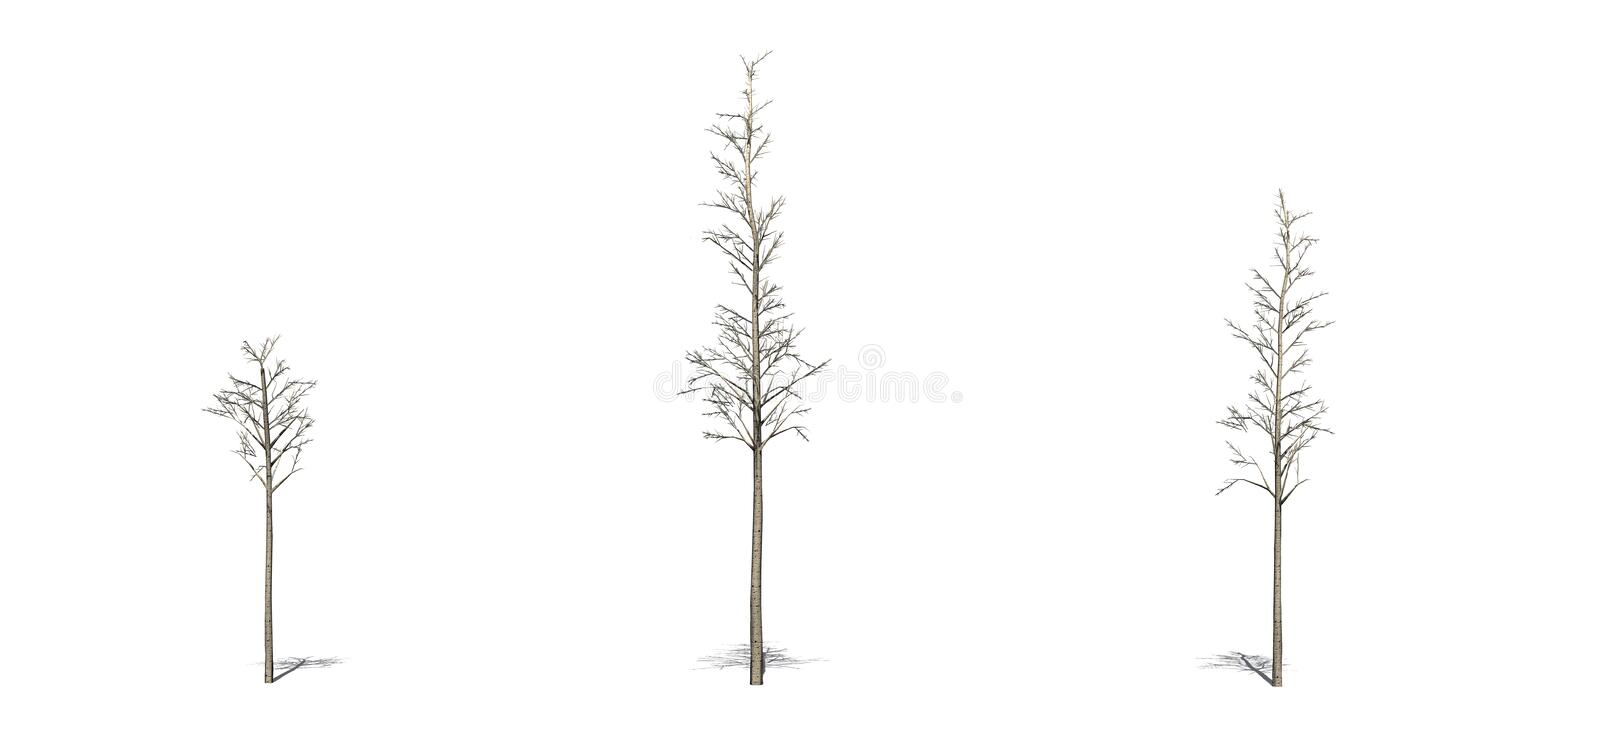 Set of European Aspen trees in the winter with shadow on the floor on white background. Set of European Aspen trees in the winter with shadow on the floor stock illustration